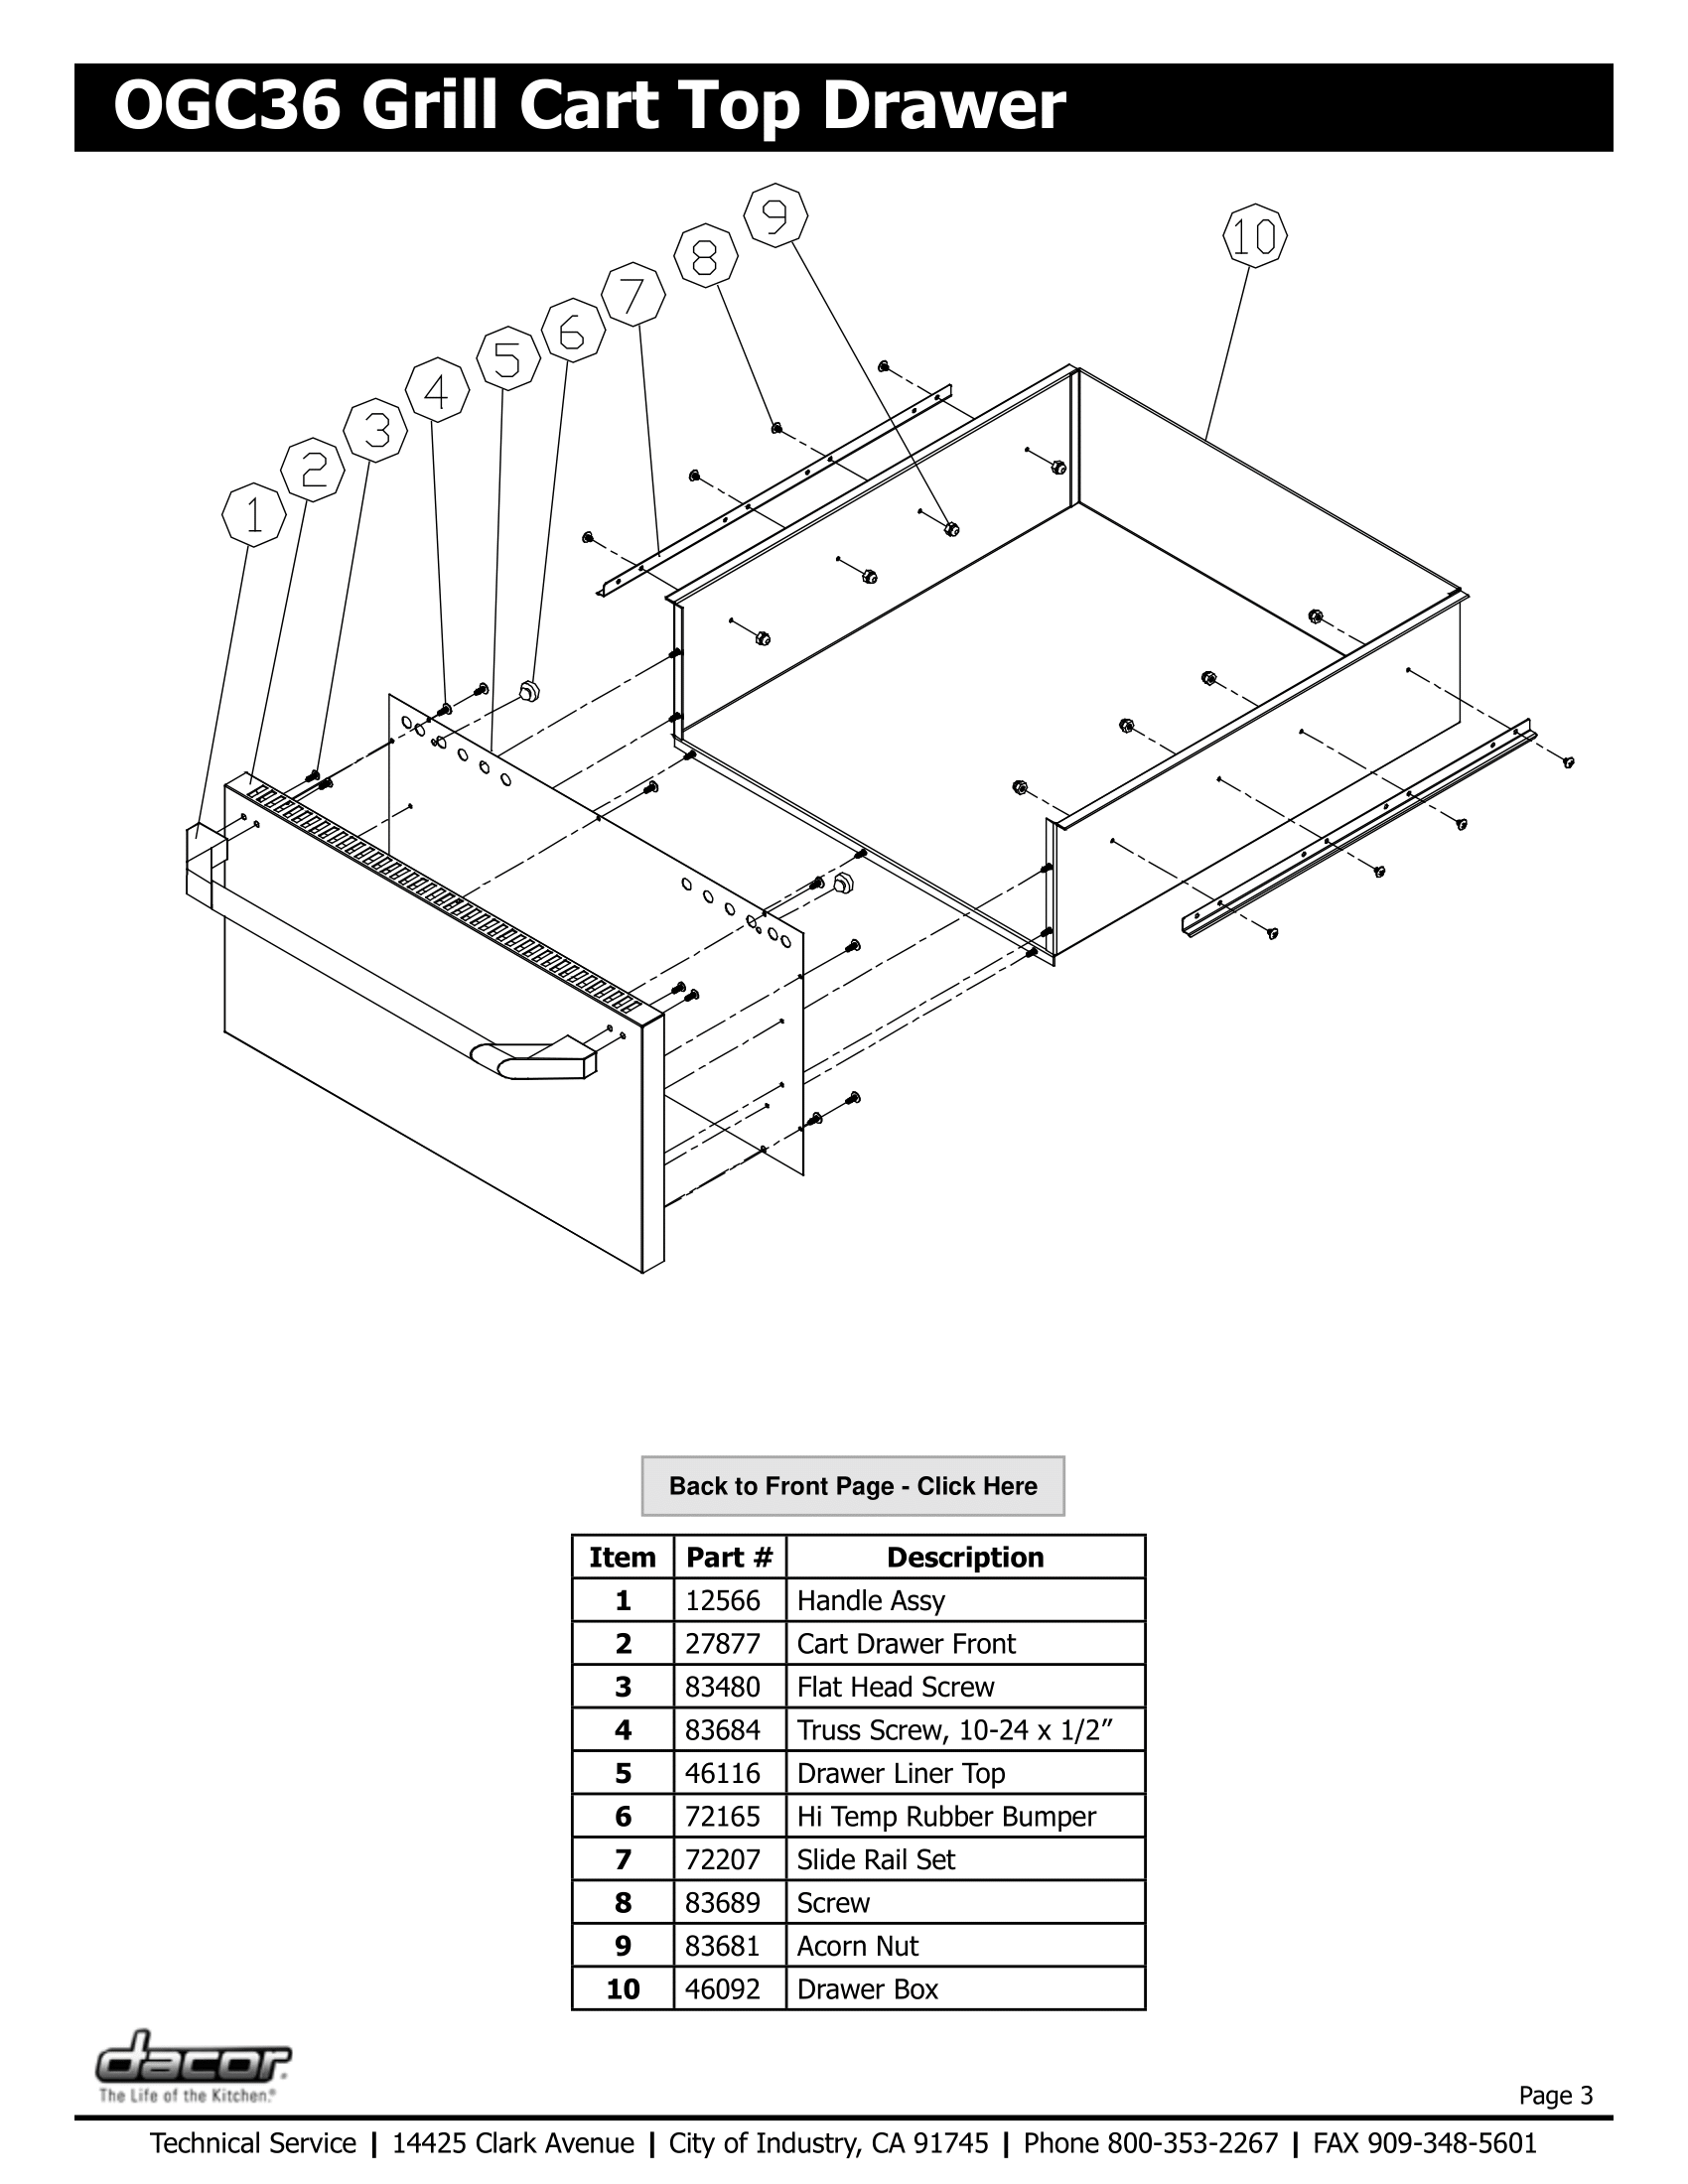 Dacor OGC36 Top Drawer Schematic